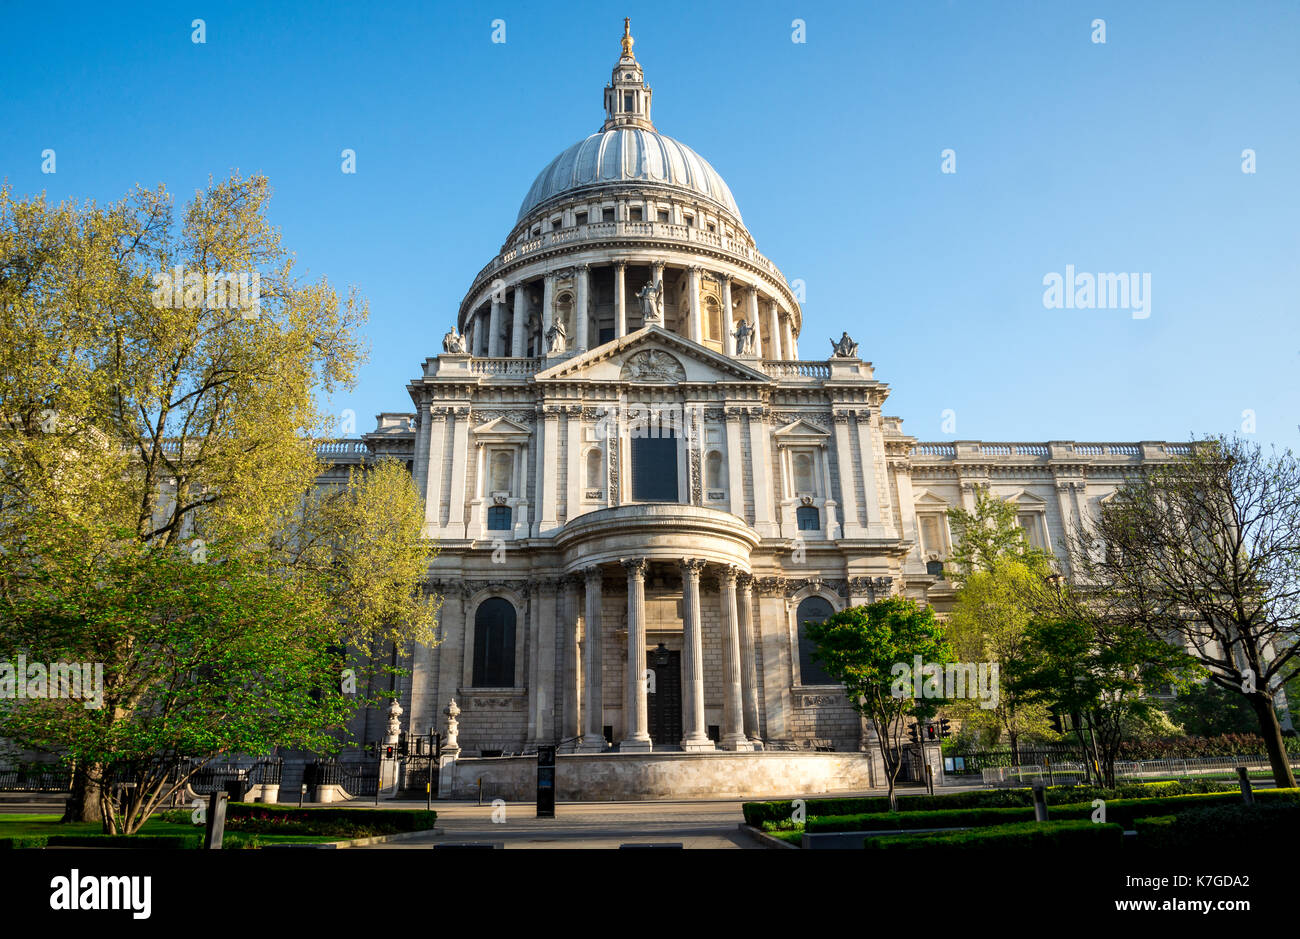 A view of southern entrance to St Paul's Cathedral in London, Great Britain - Stock Image